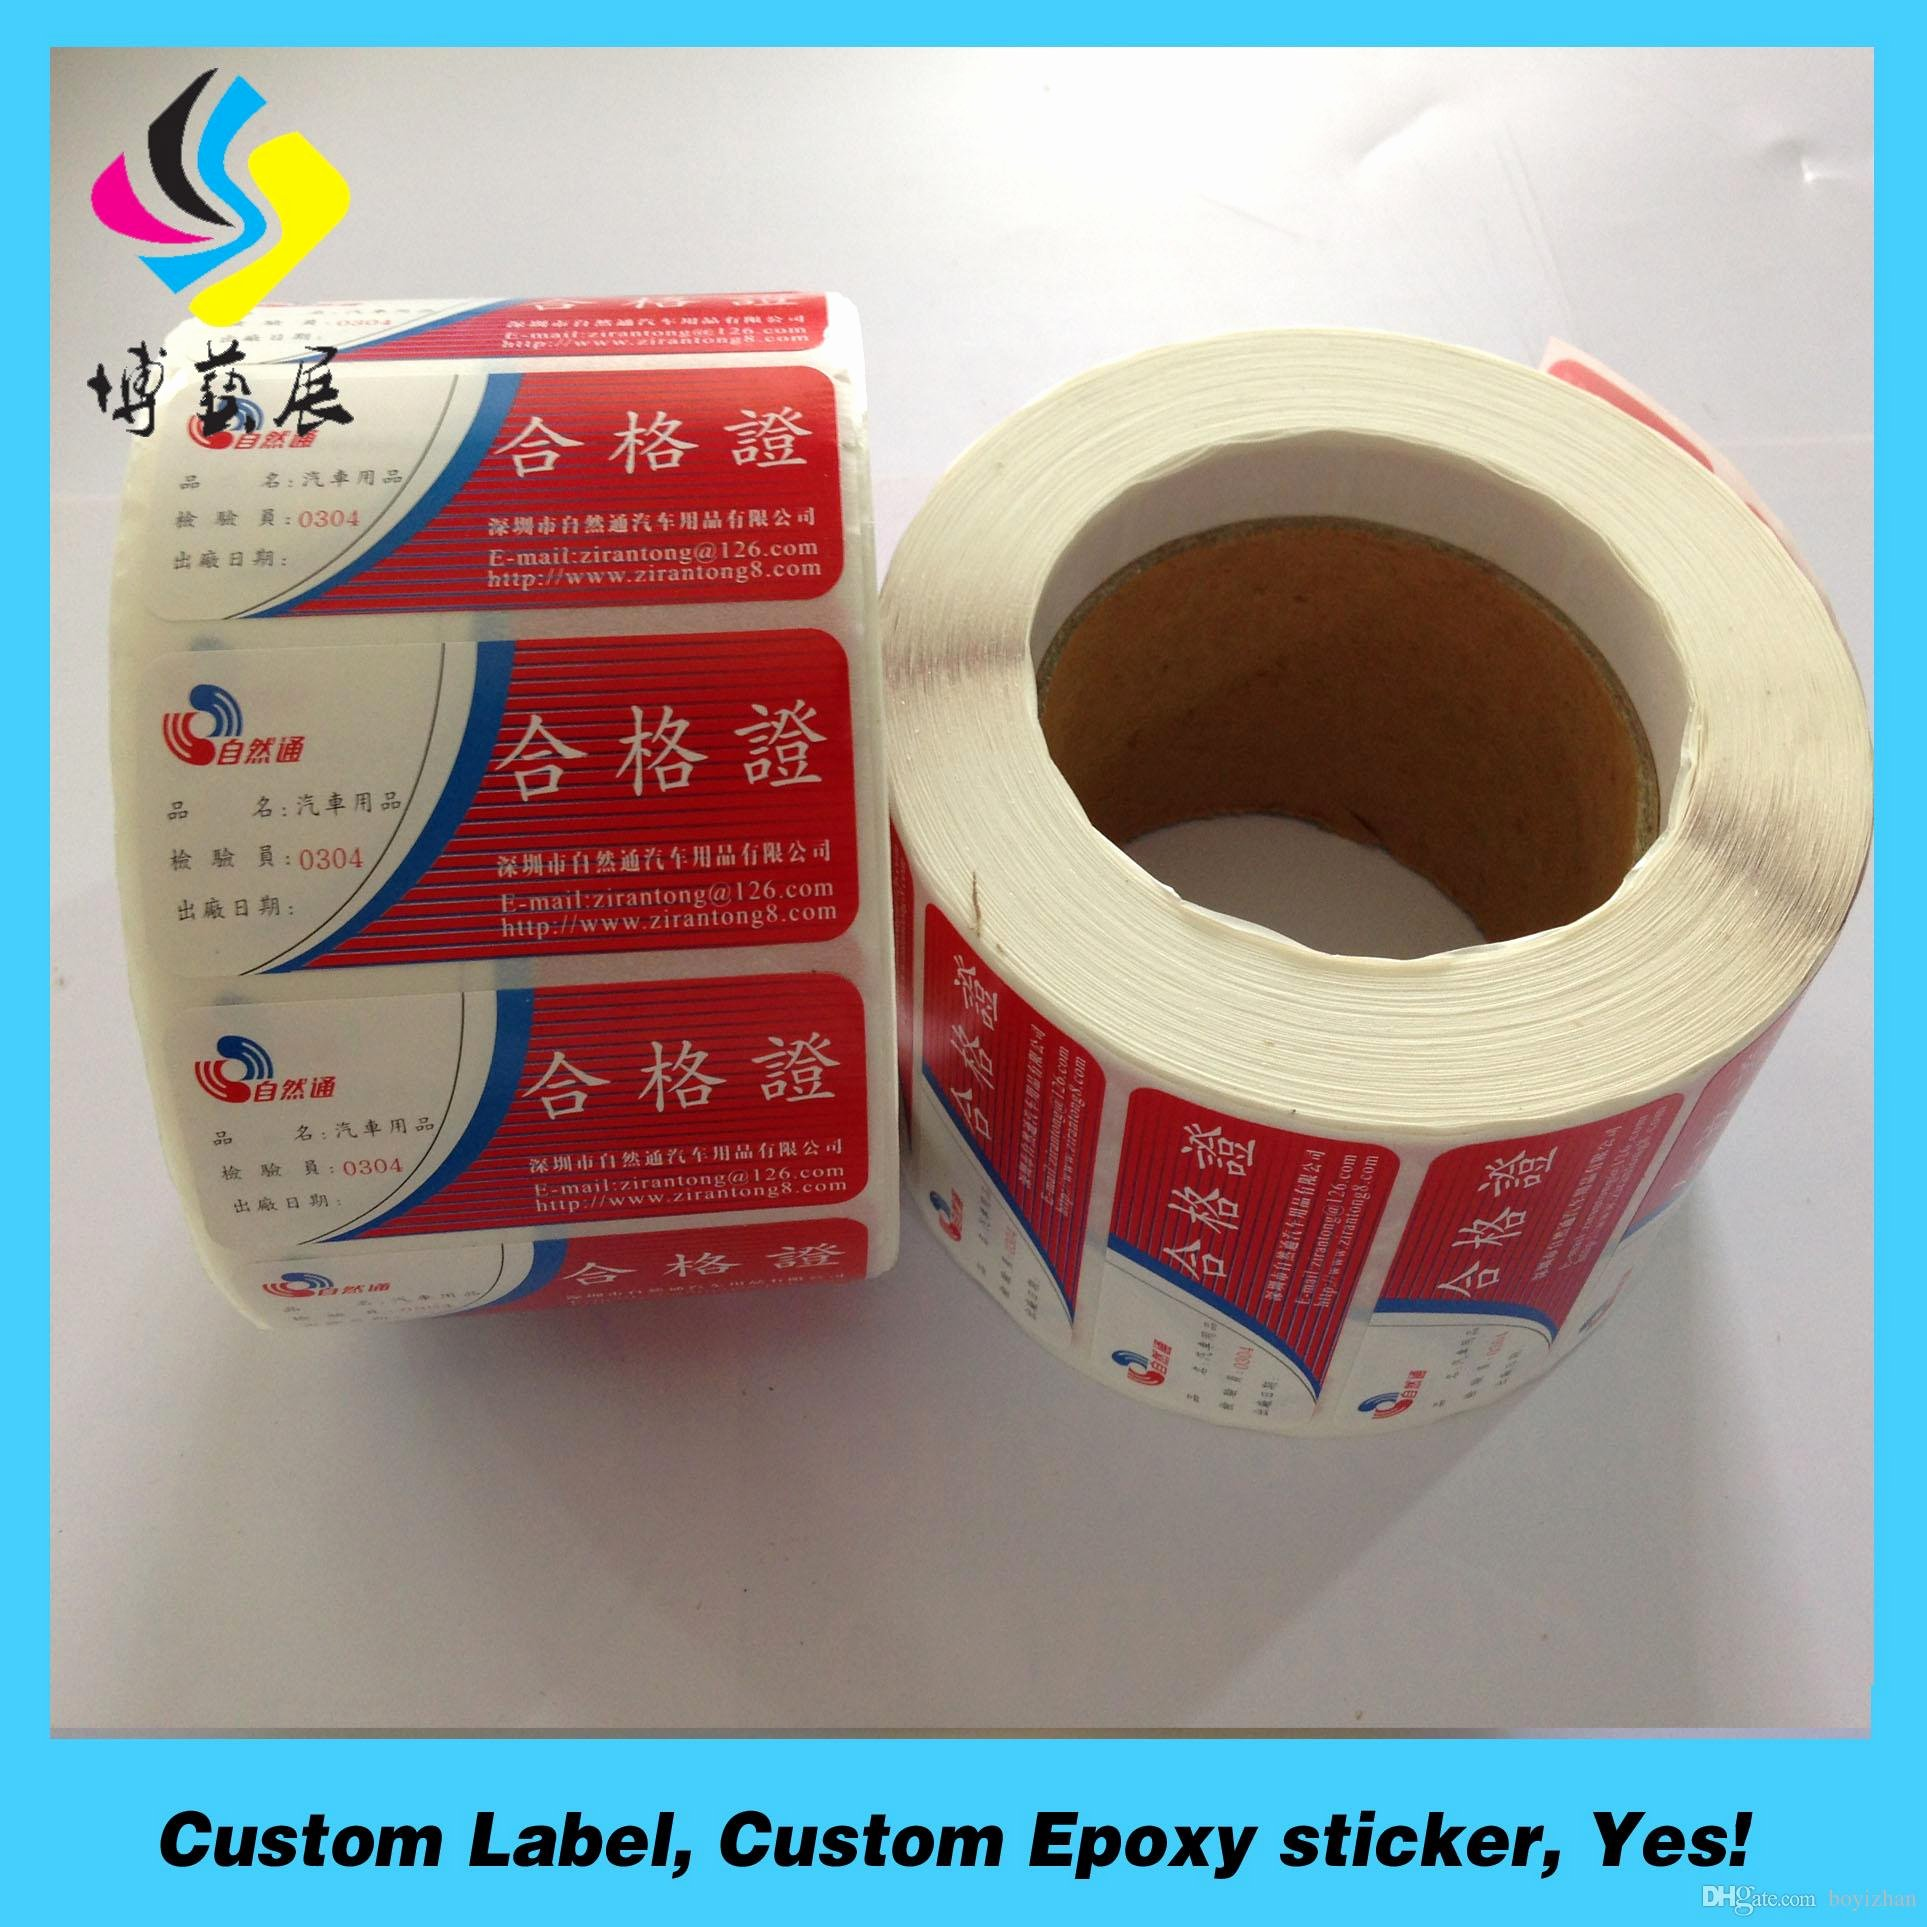 Prescription Bottle Label Generator Best Of 2018 Roll Packing Custom order Can Be Accepted Cheap Self Adhesive Pill Bottle Labels Maker From